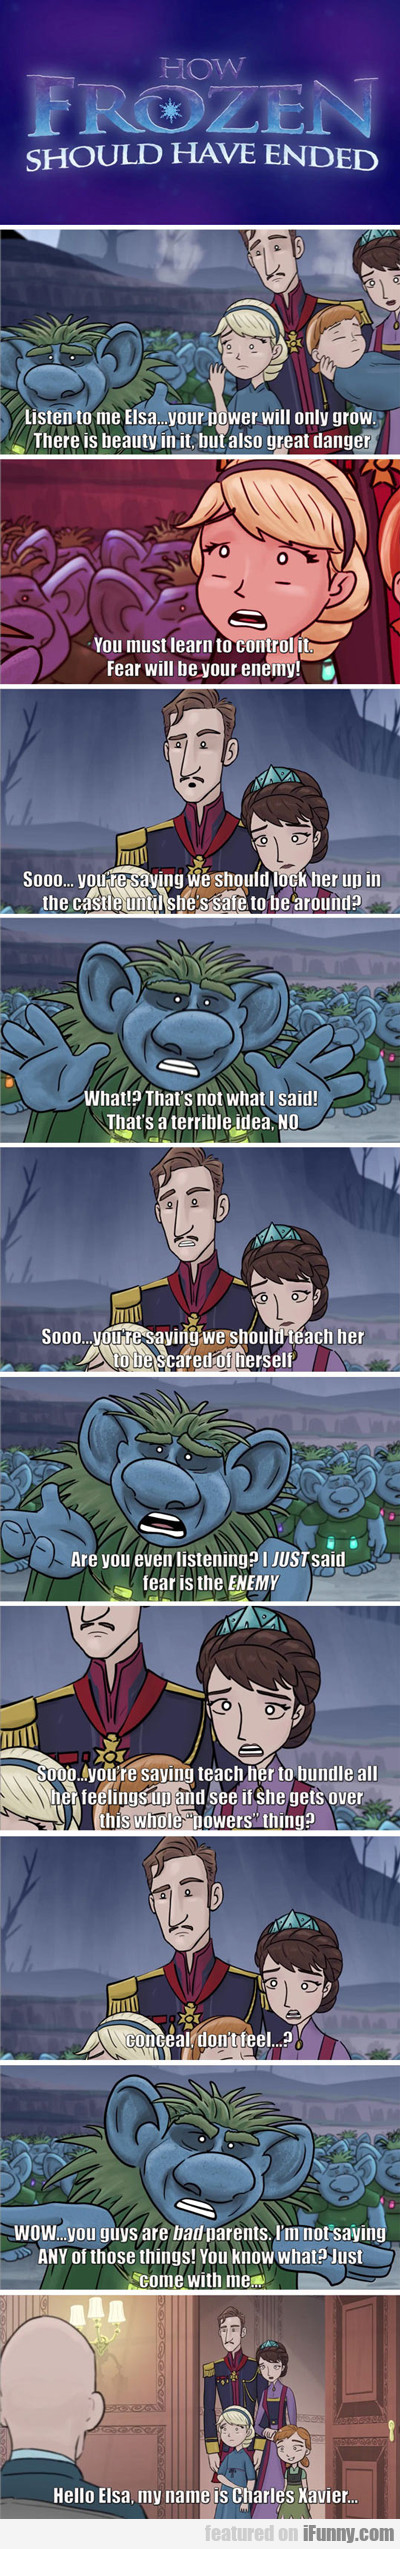 Frozen: How It Should Have Ended...